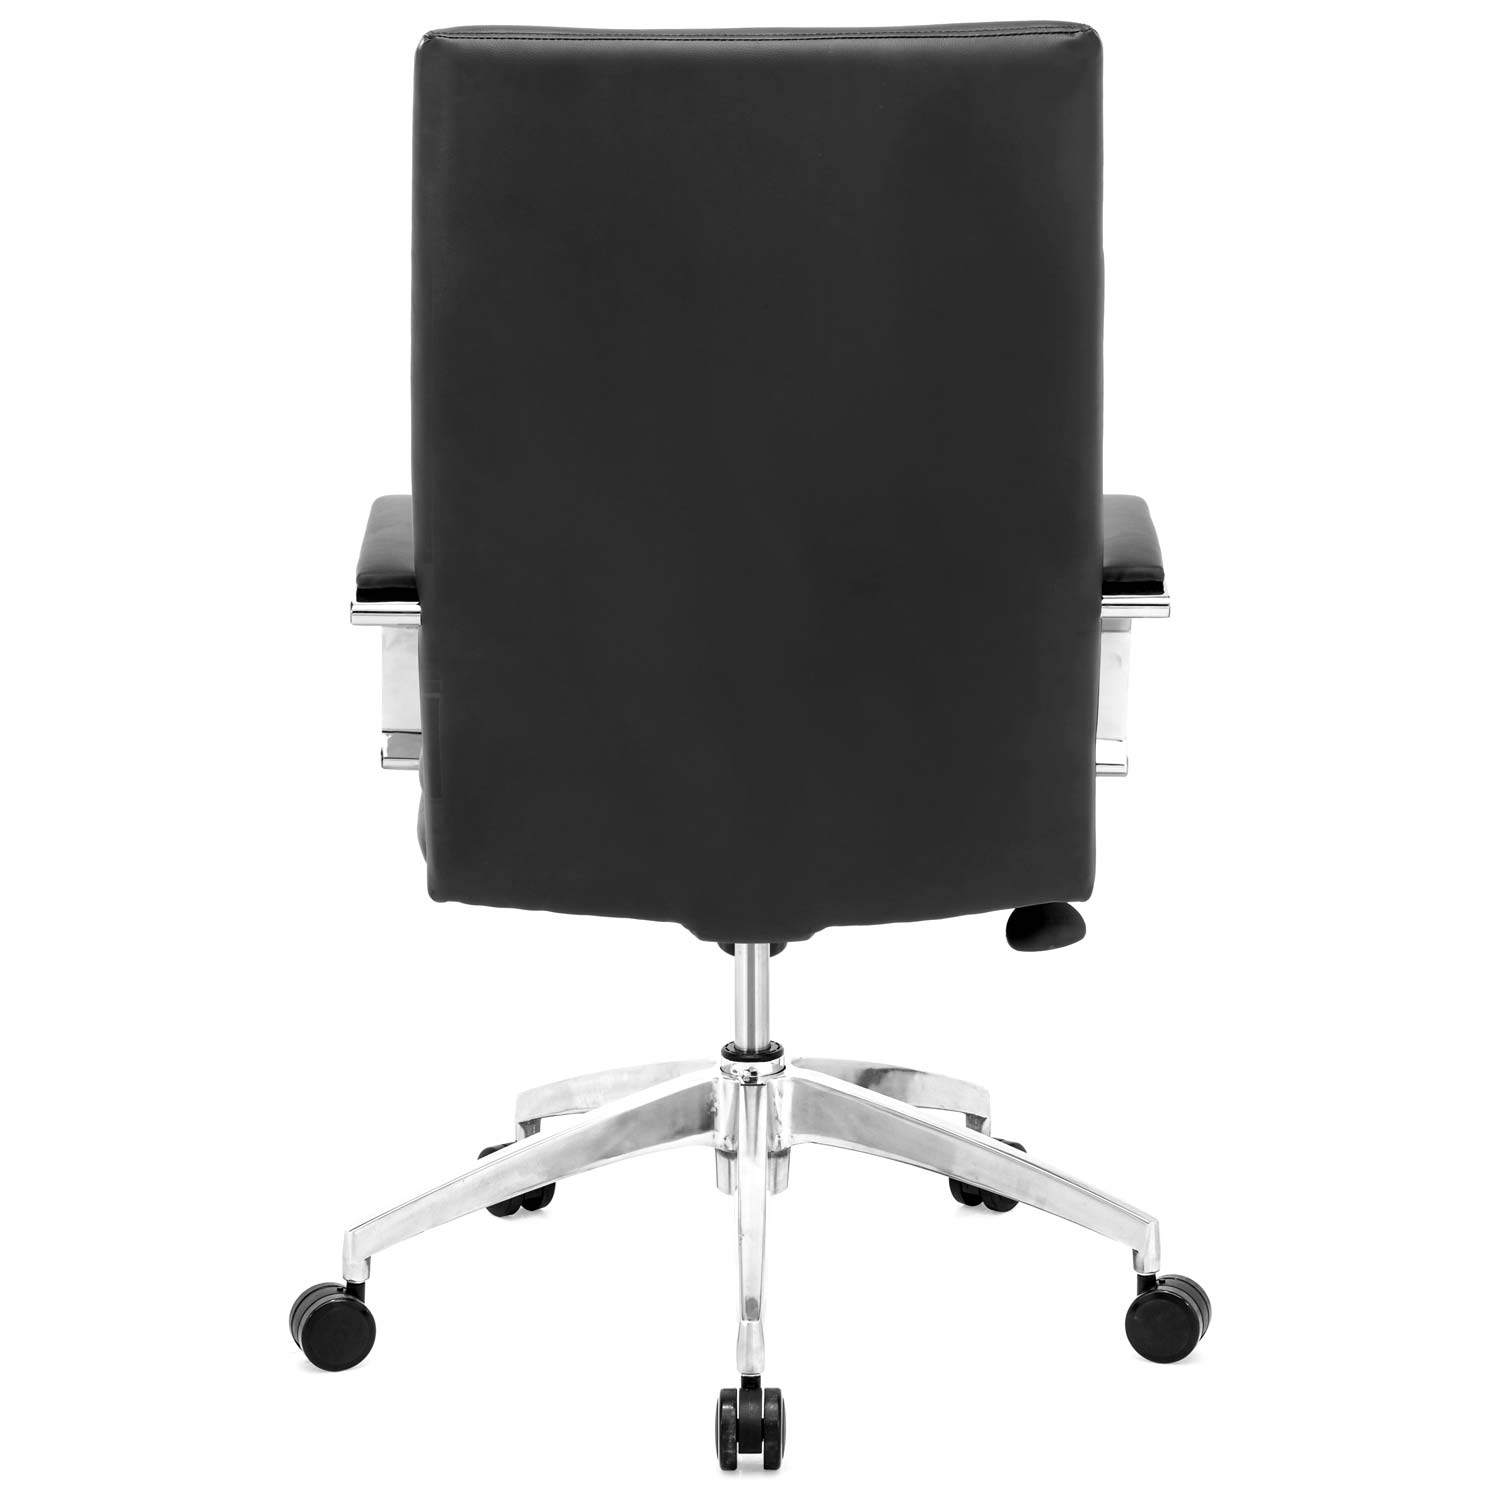 Director Comfort Office Chair - Chrome Steel, Black - ZM-205326